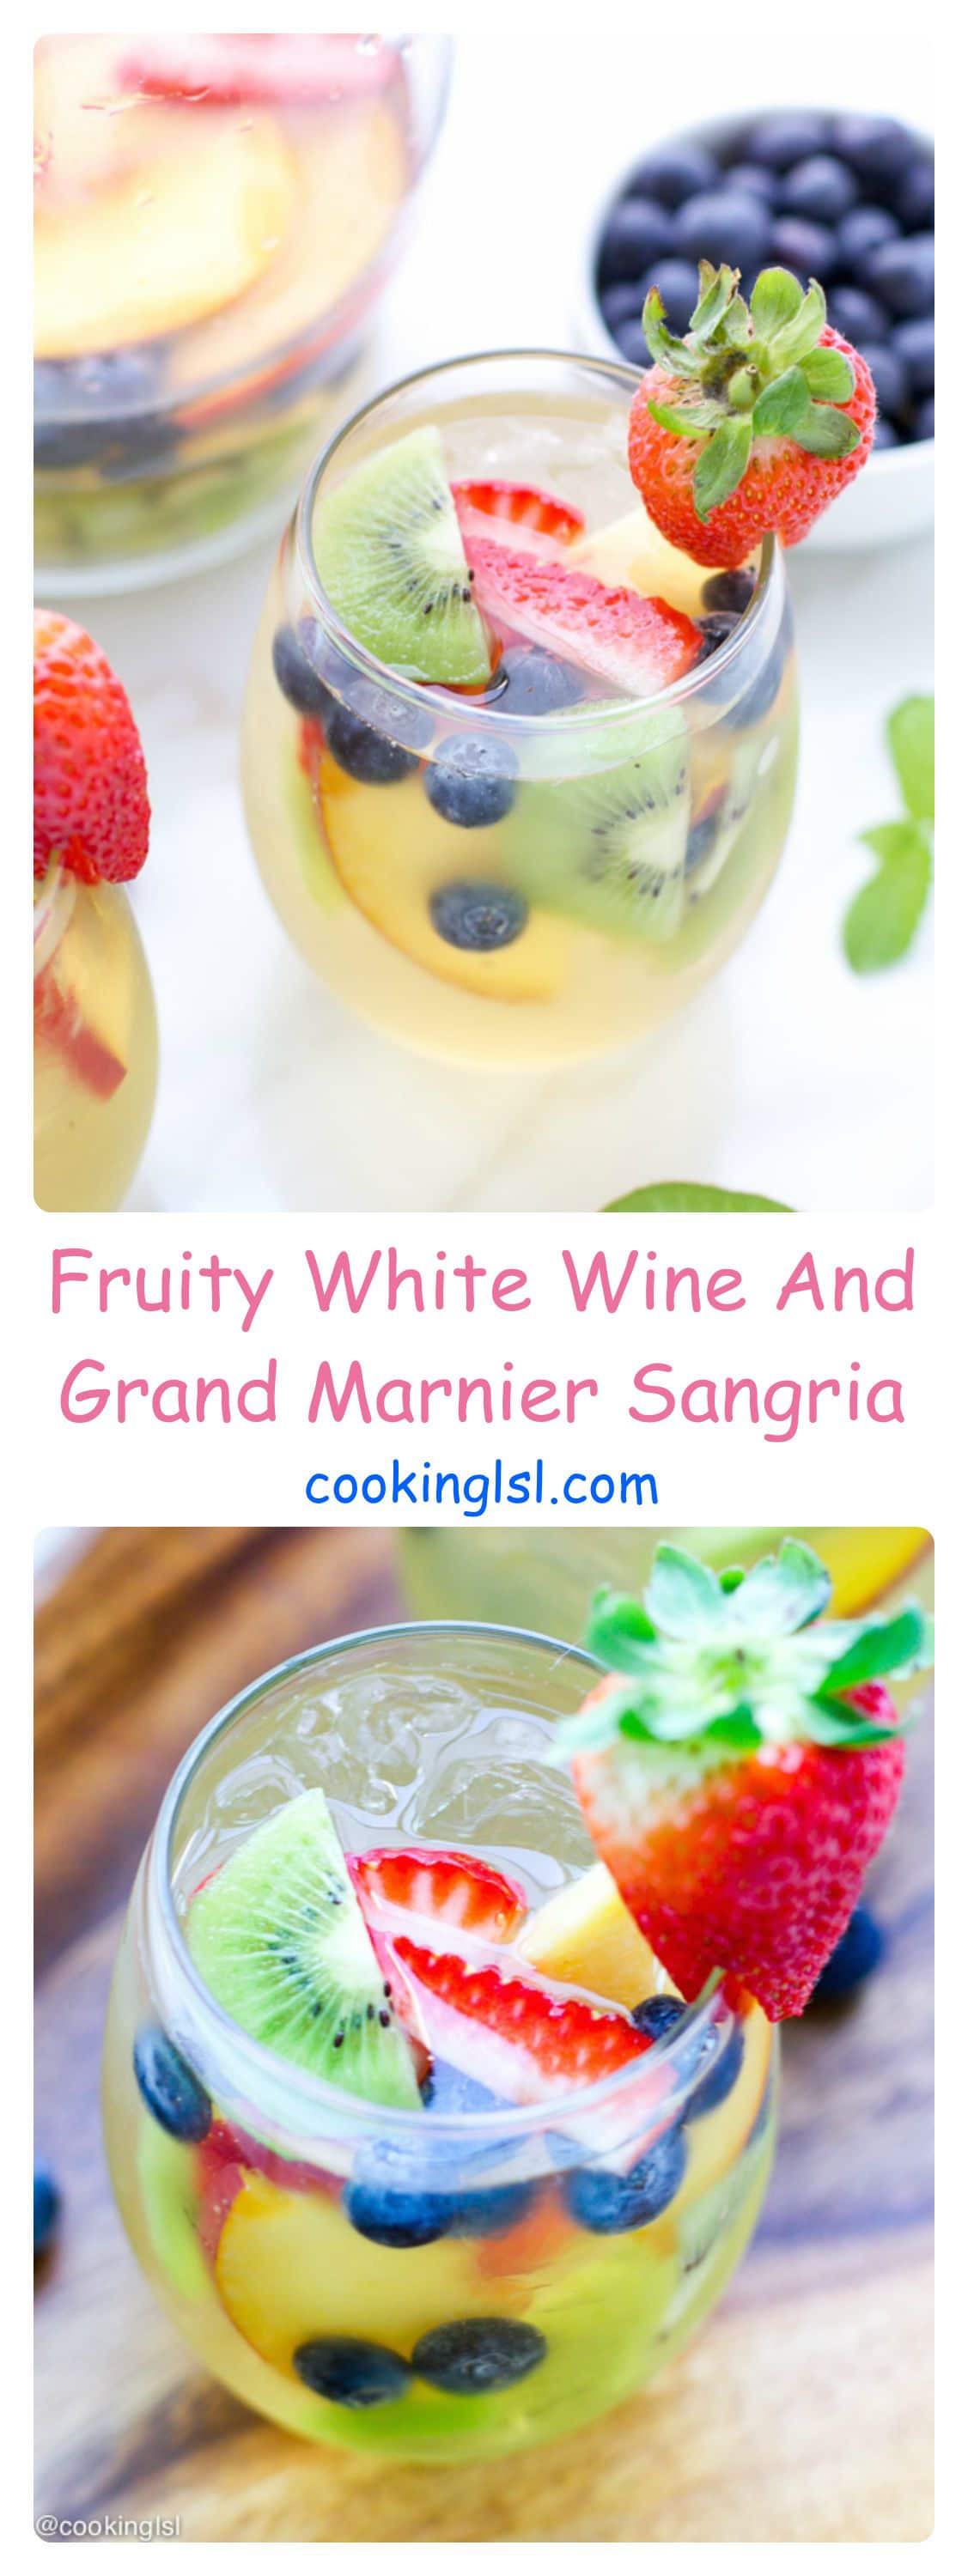 fruity-white-wine-grand-marnier-sangria-recipe